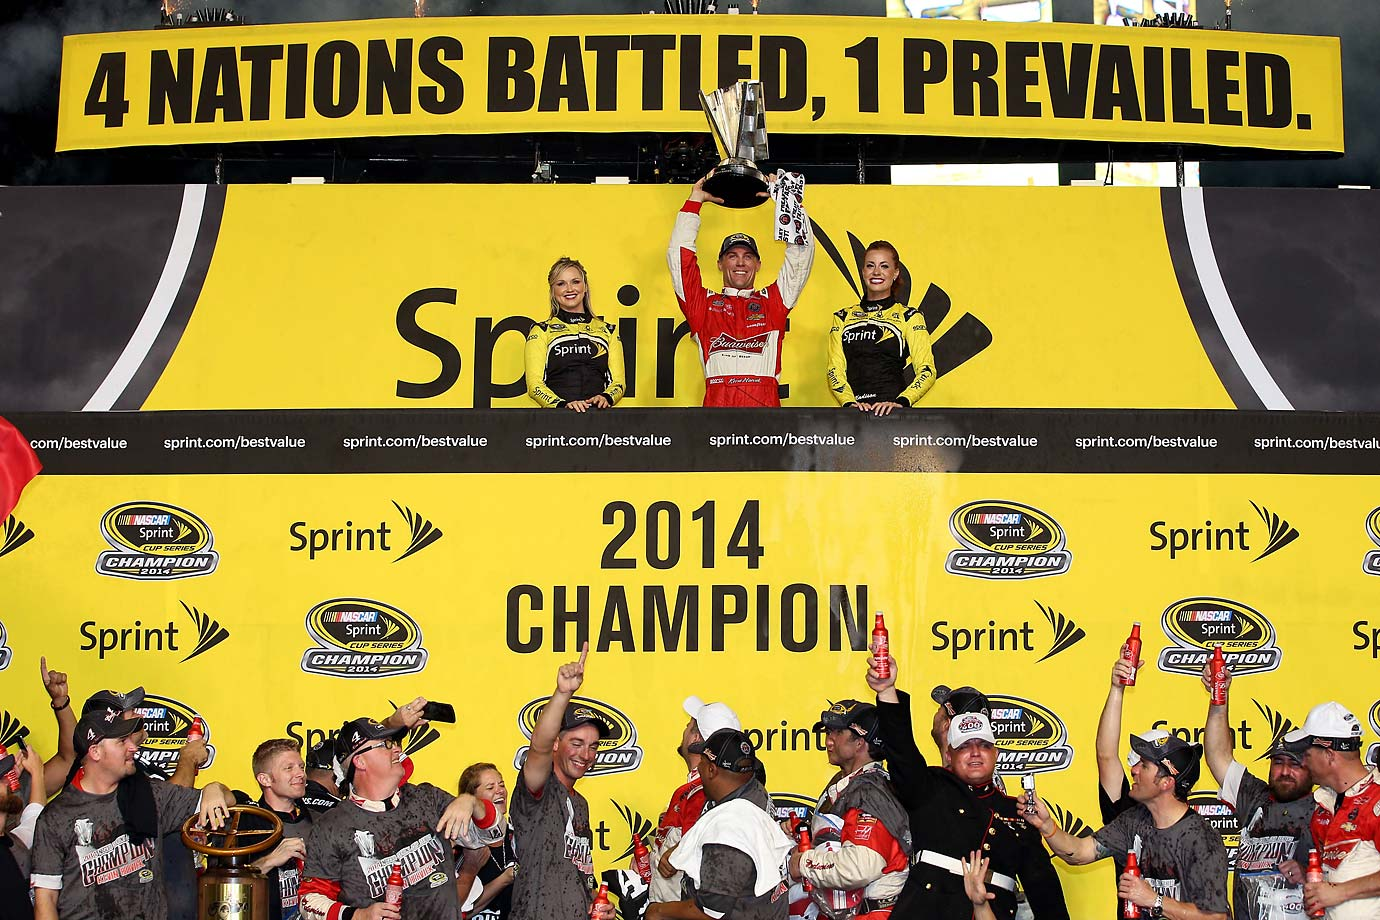 Kevin Harvick hoists the trophy in victory lane.